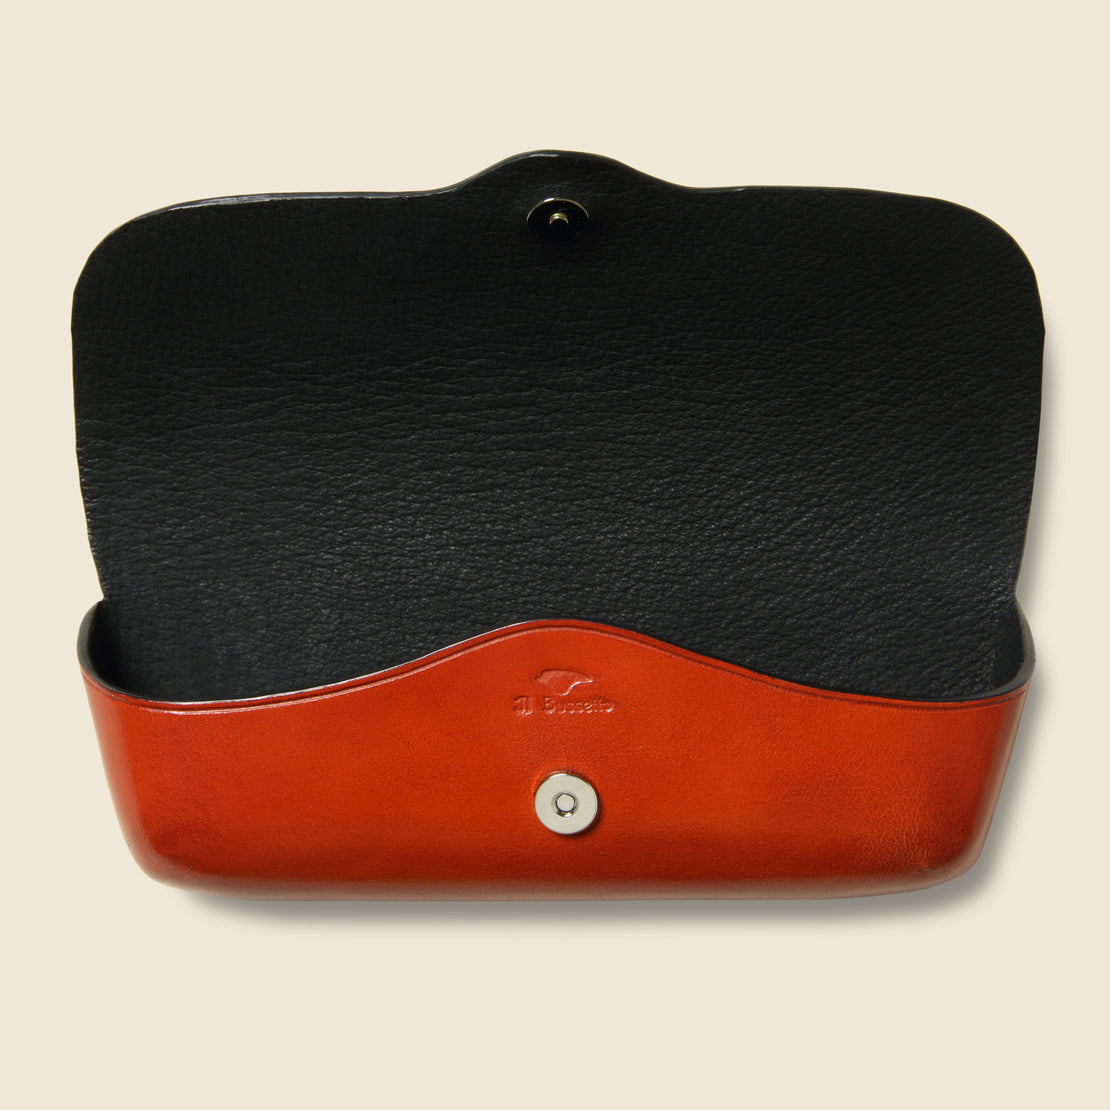 Eyeglass Case - Orange